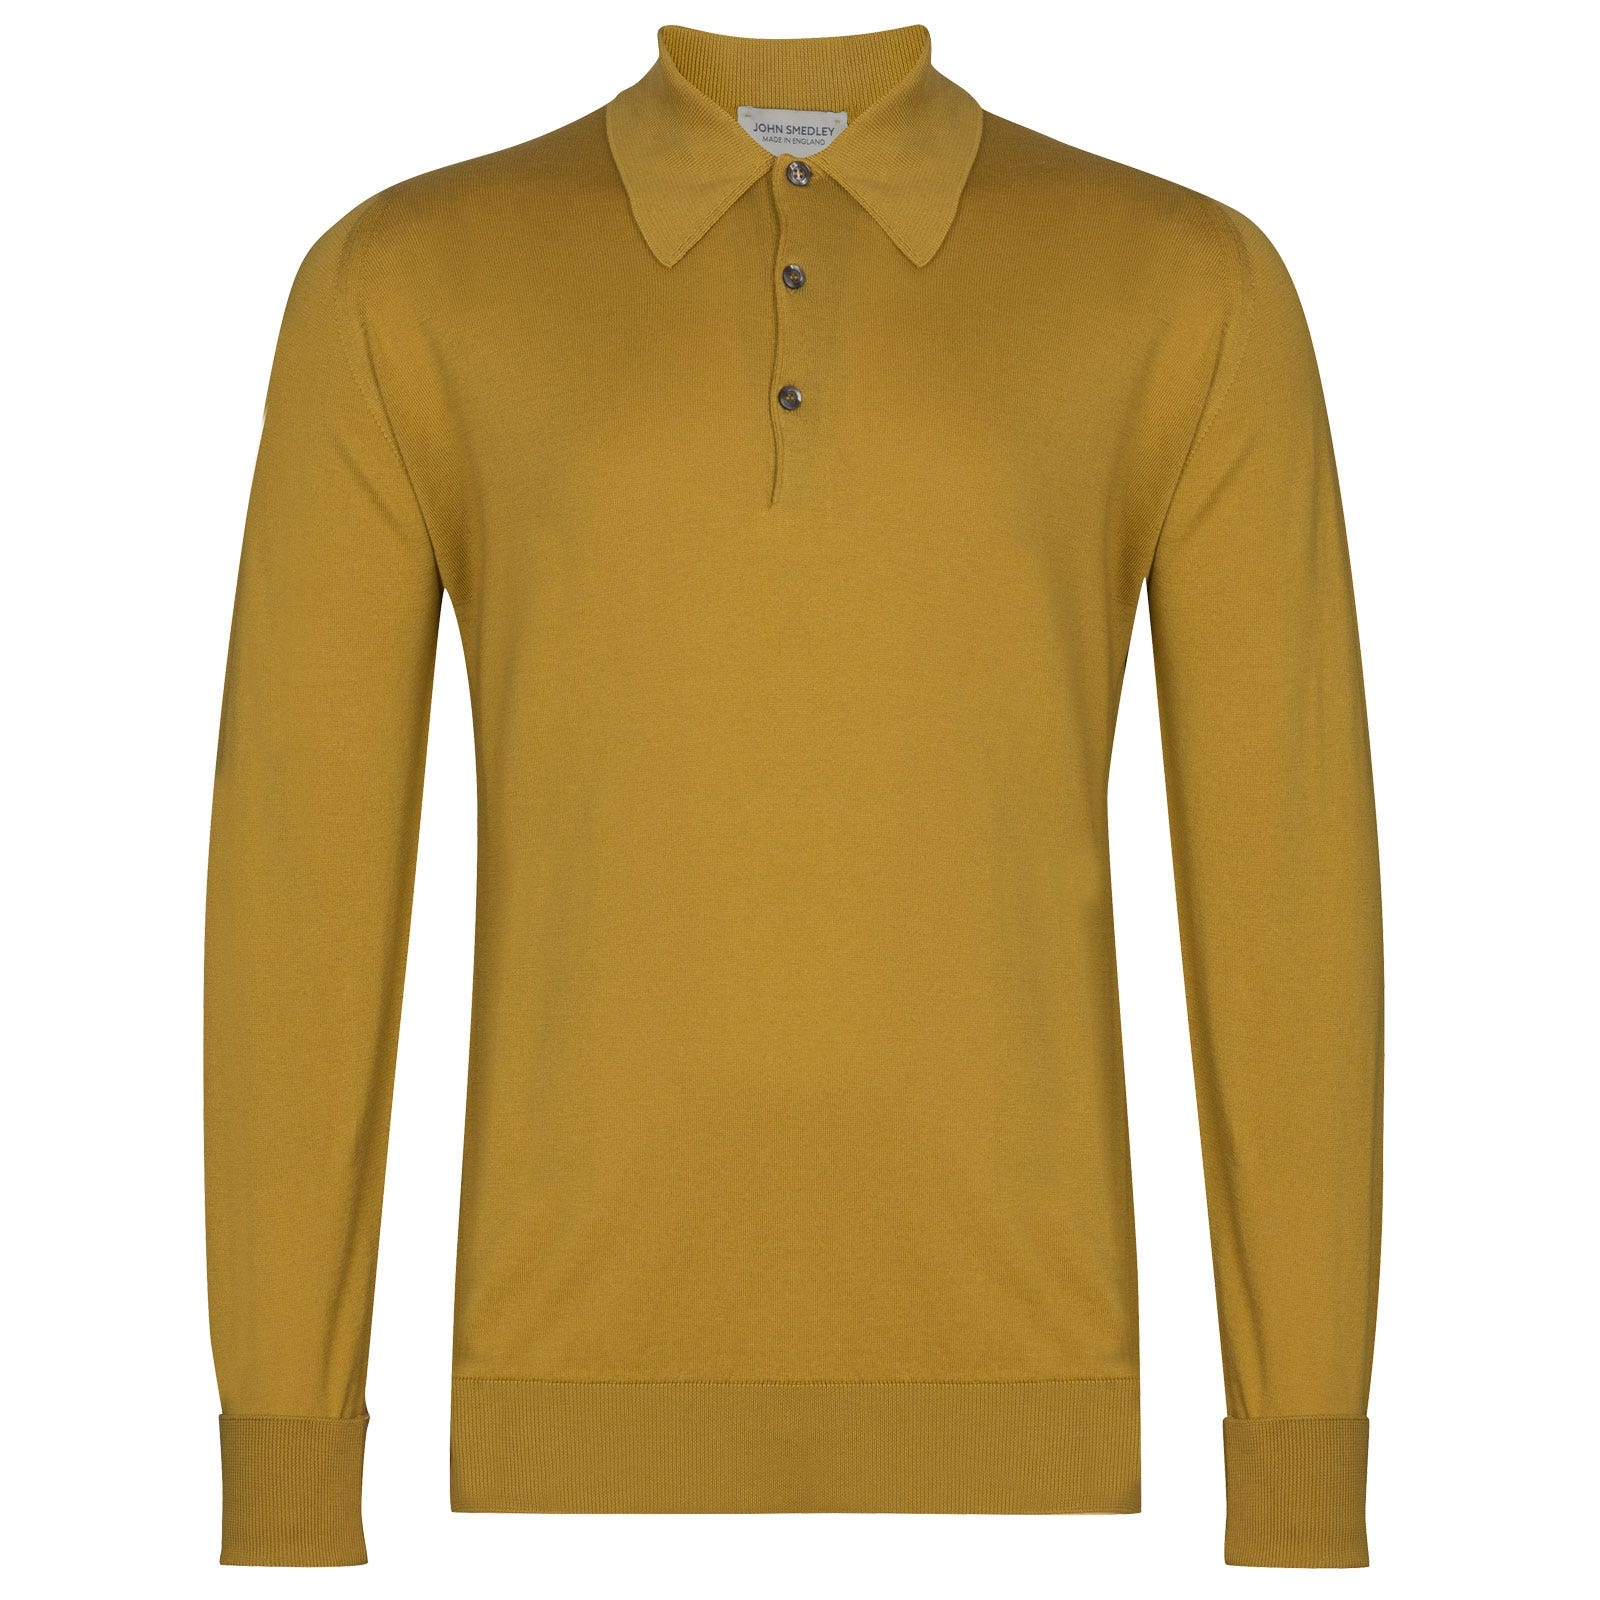 John Smedley Finchley in Stamen Yellow Shirt-XLG